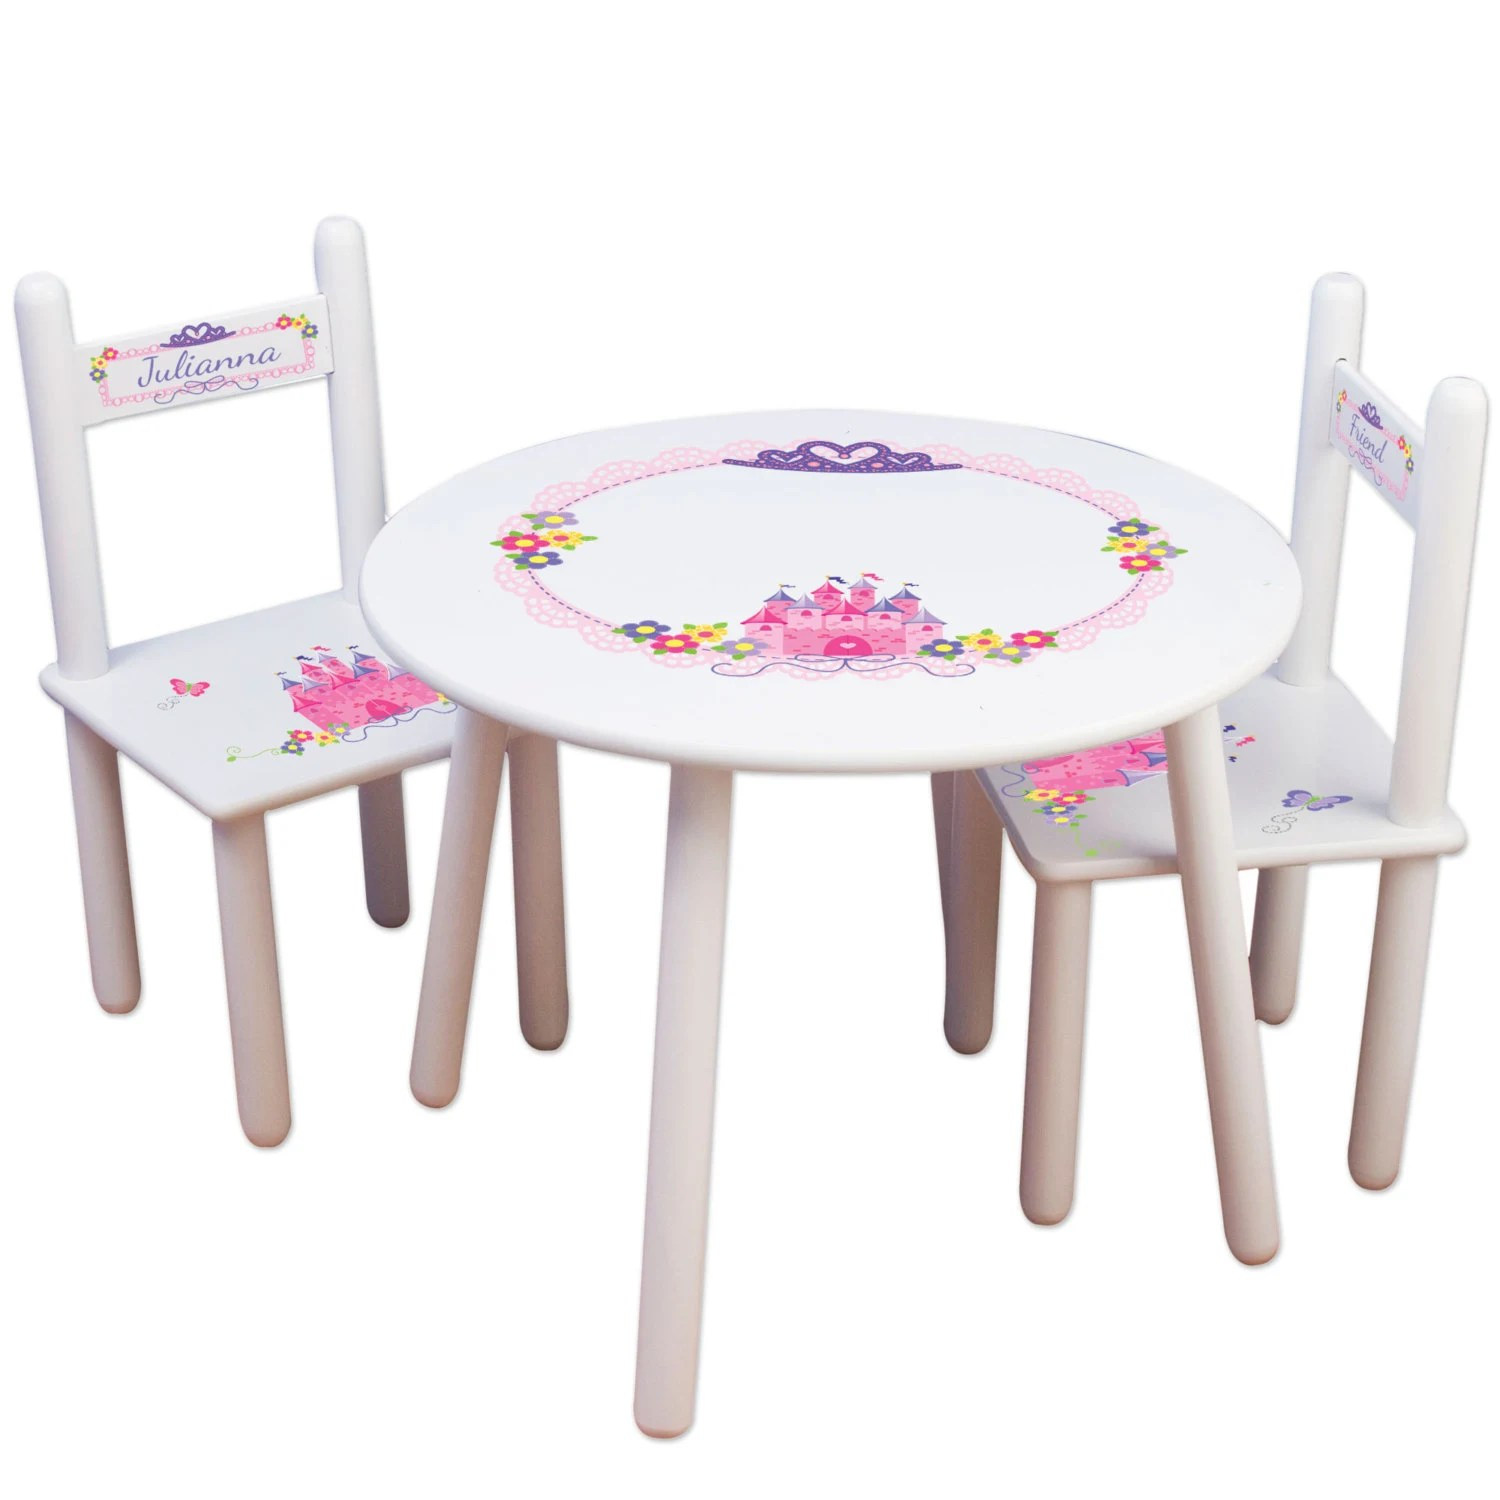 Kids Table Chairs Girls Princess Table And Chair Set Frozen Kids Furniture